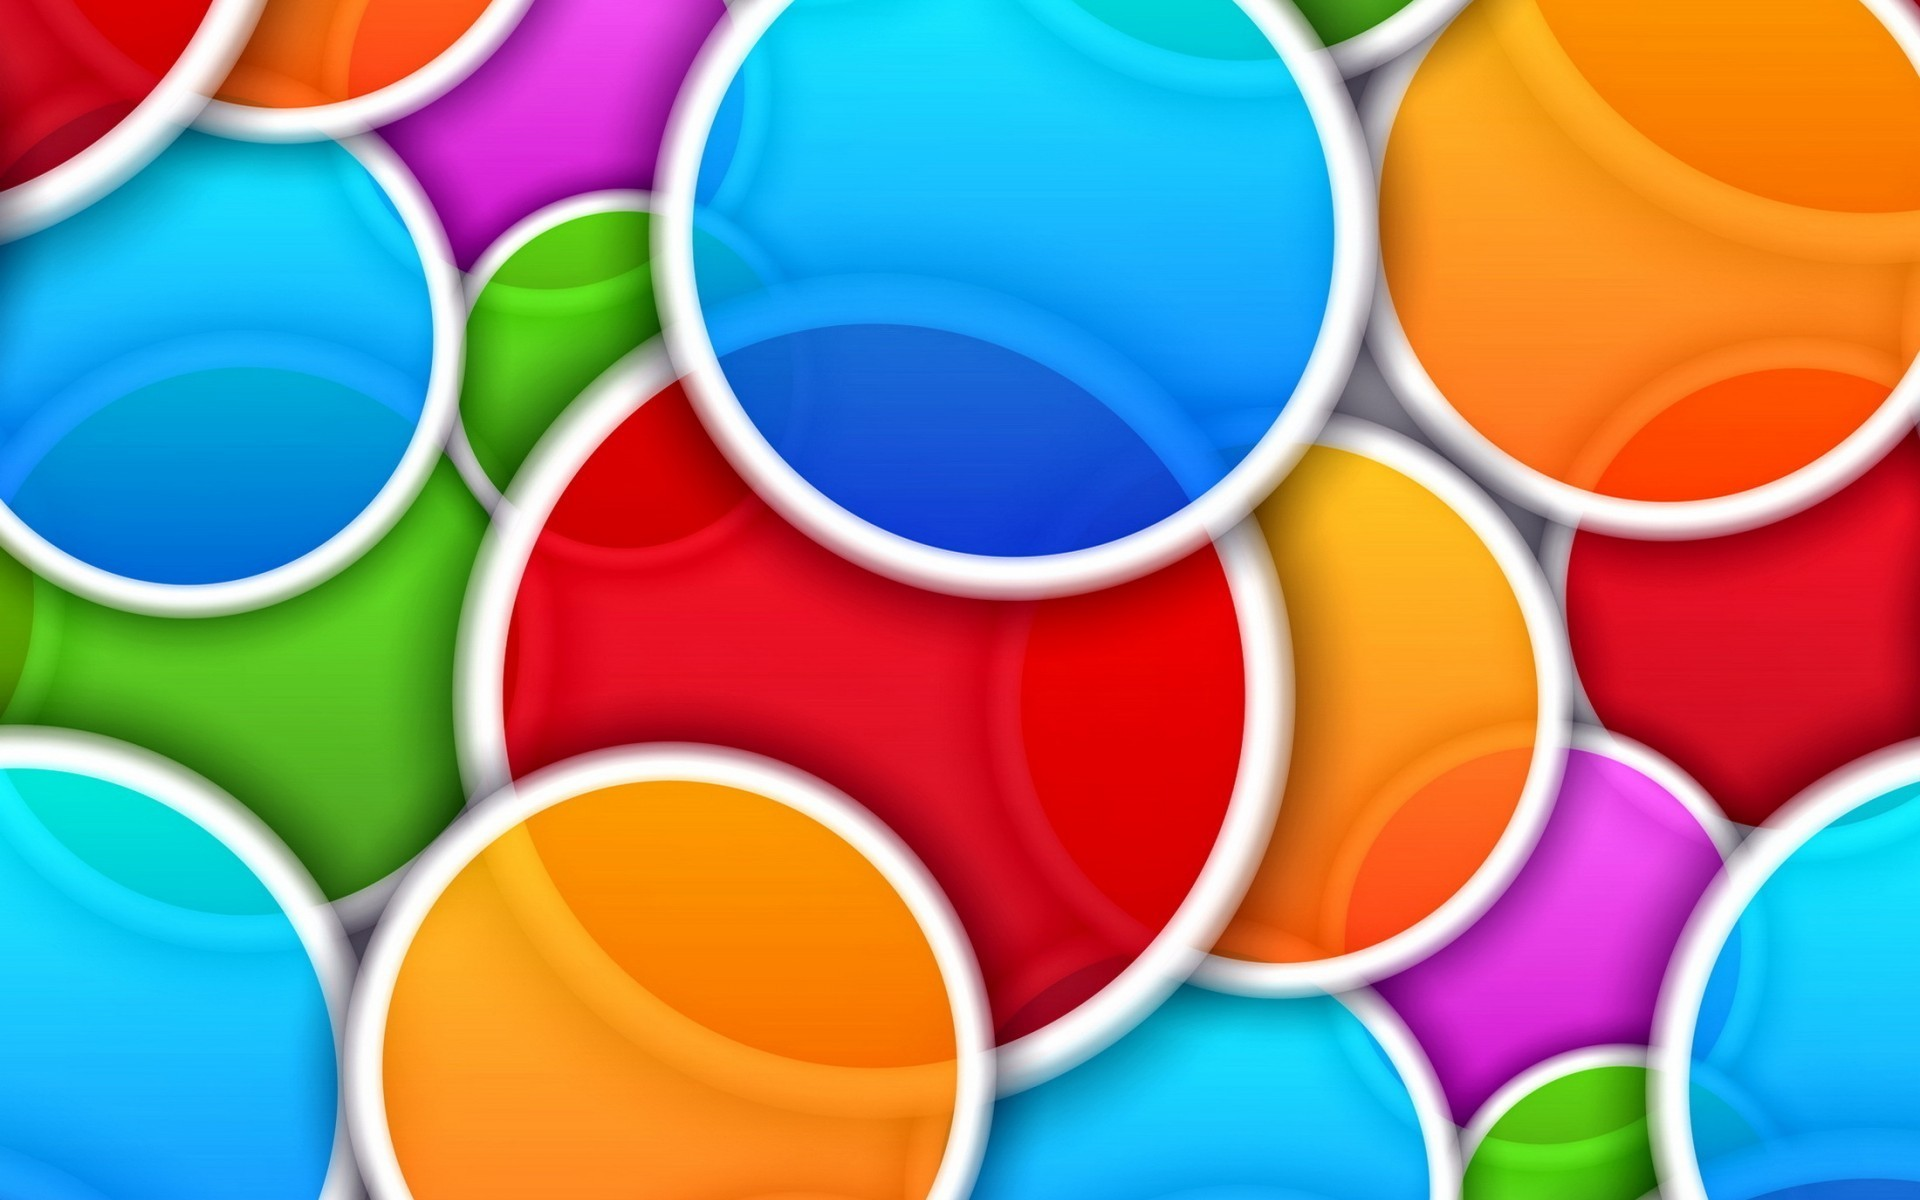 Abstract Colors Background Wallpaper